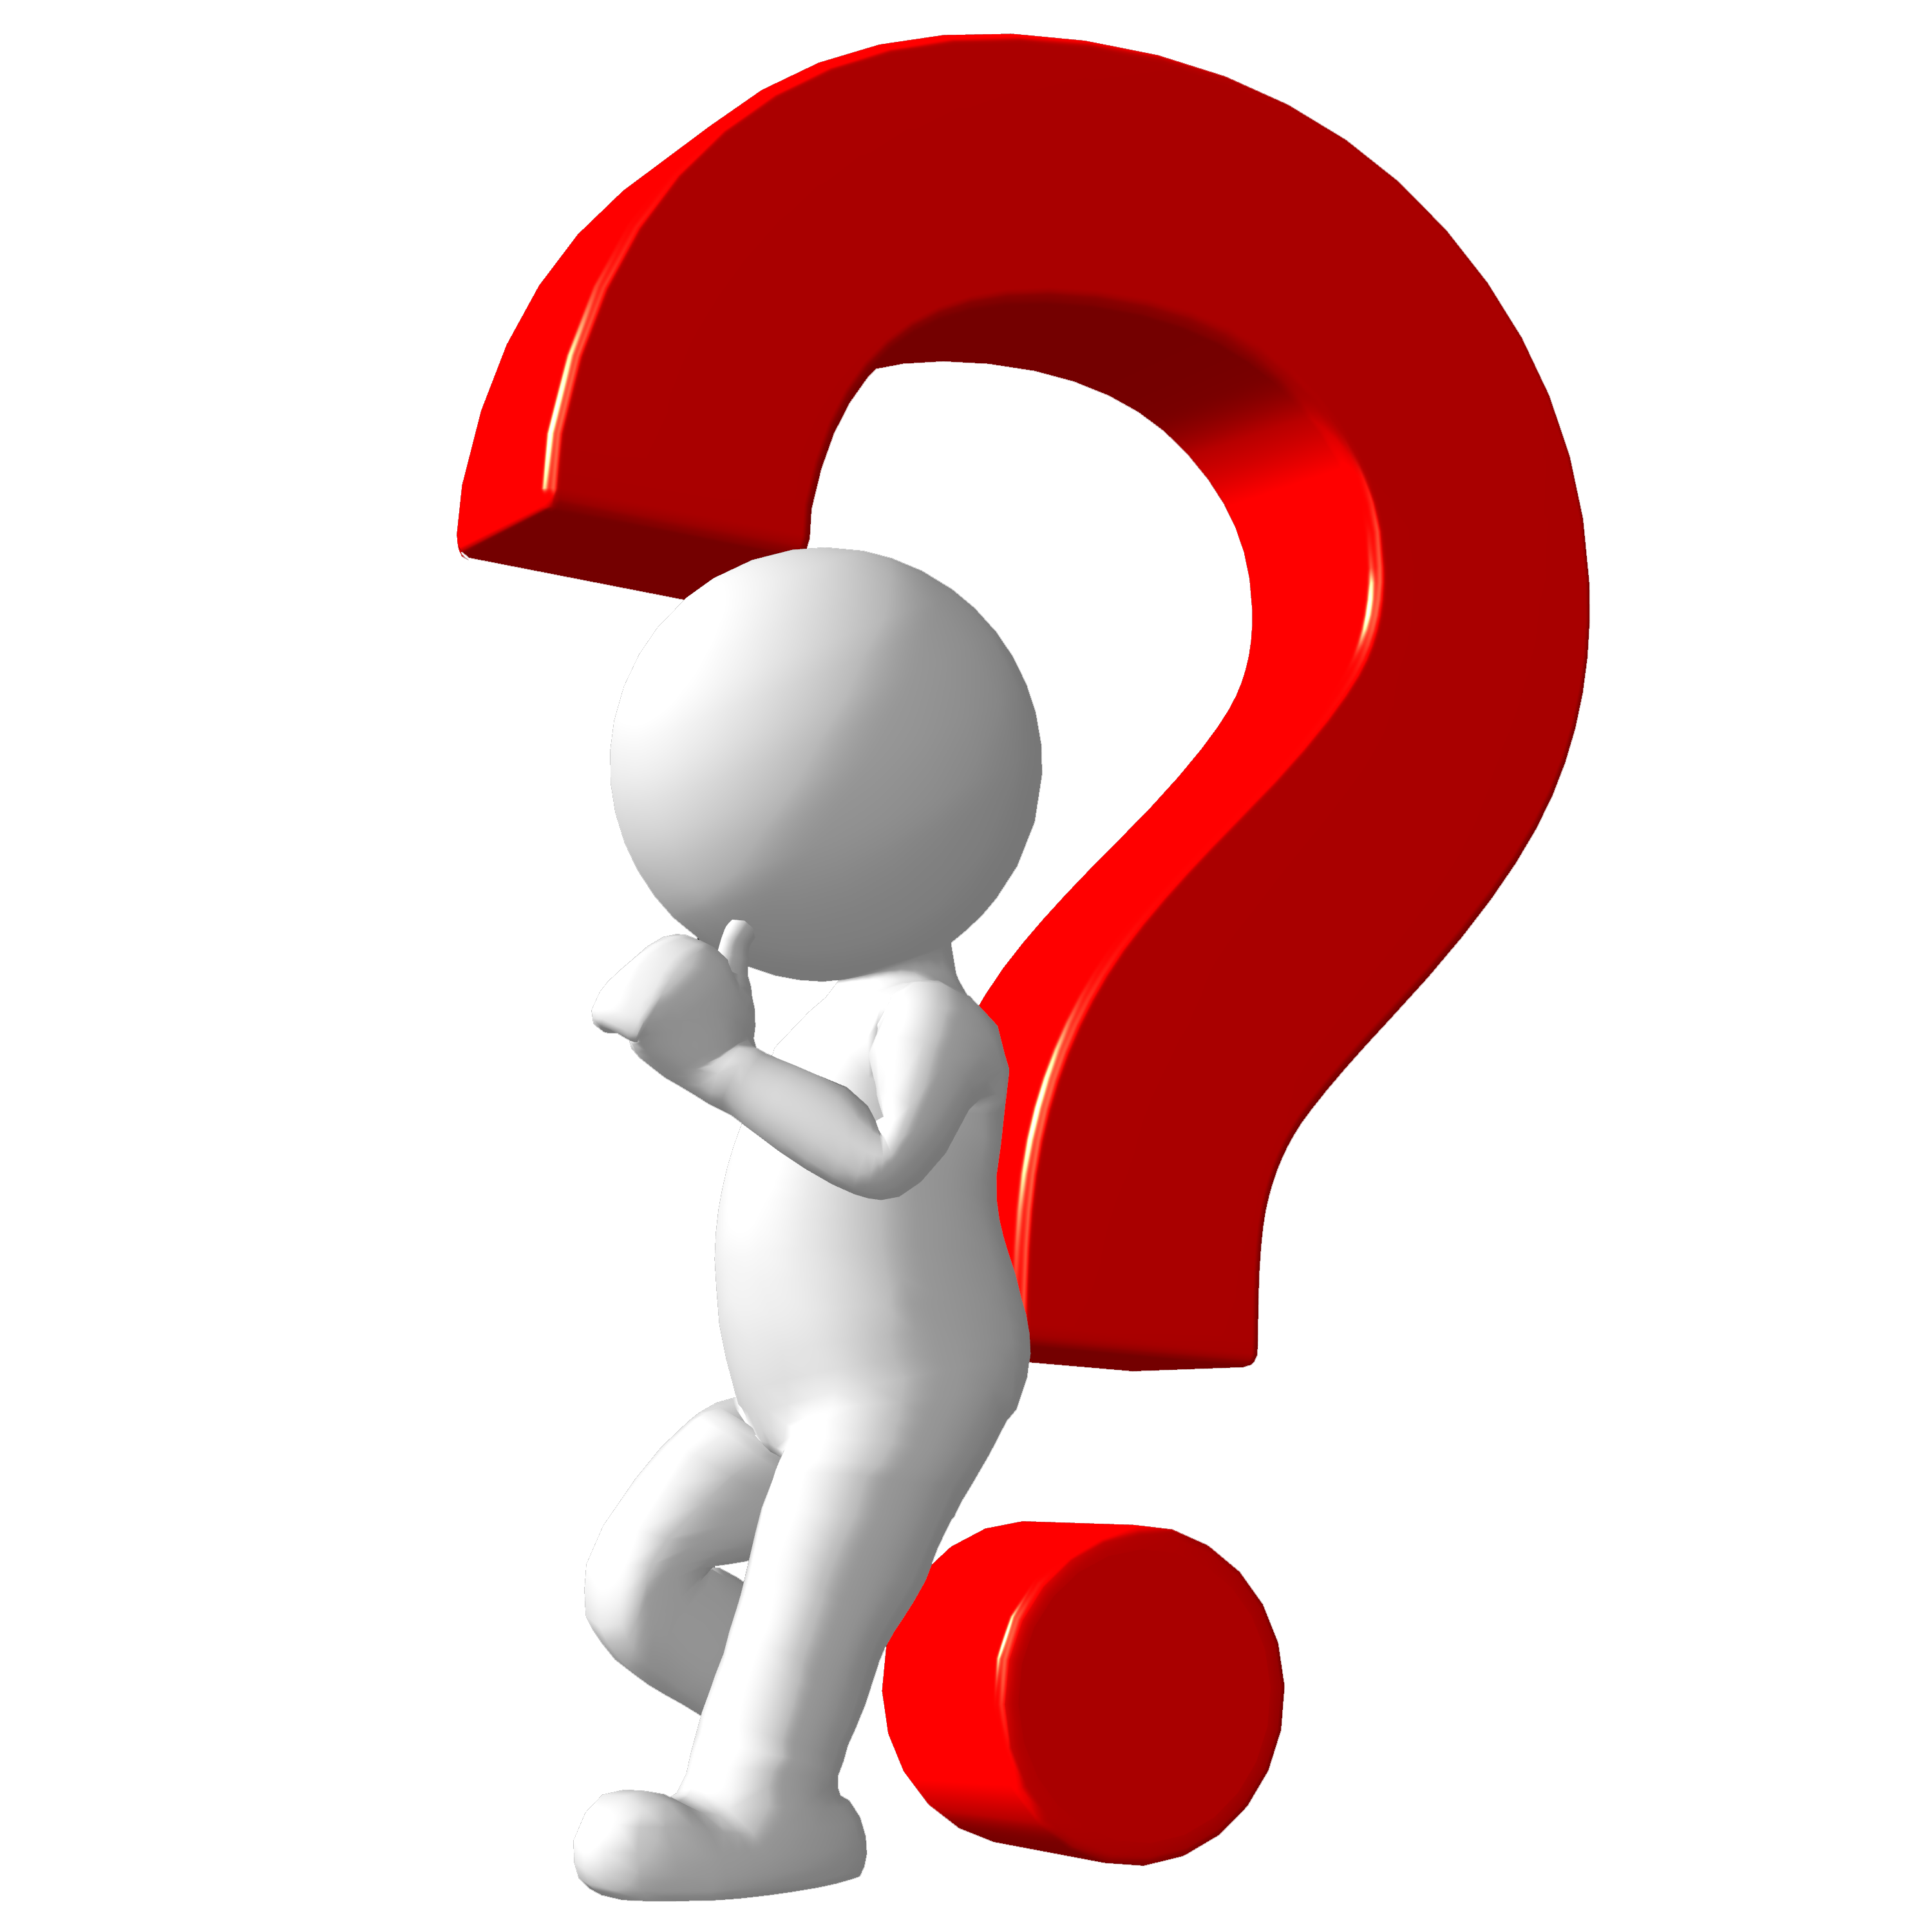 Engineering clipart restoration. Asking right questions critical